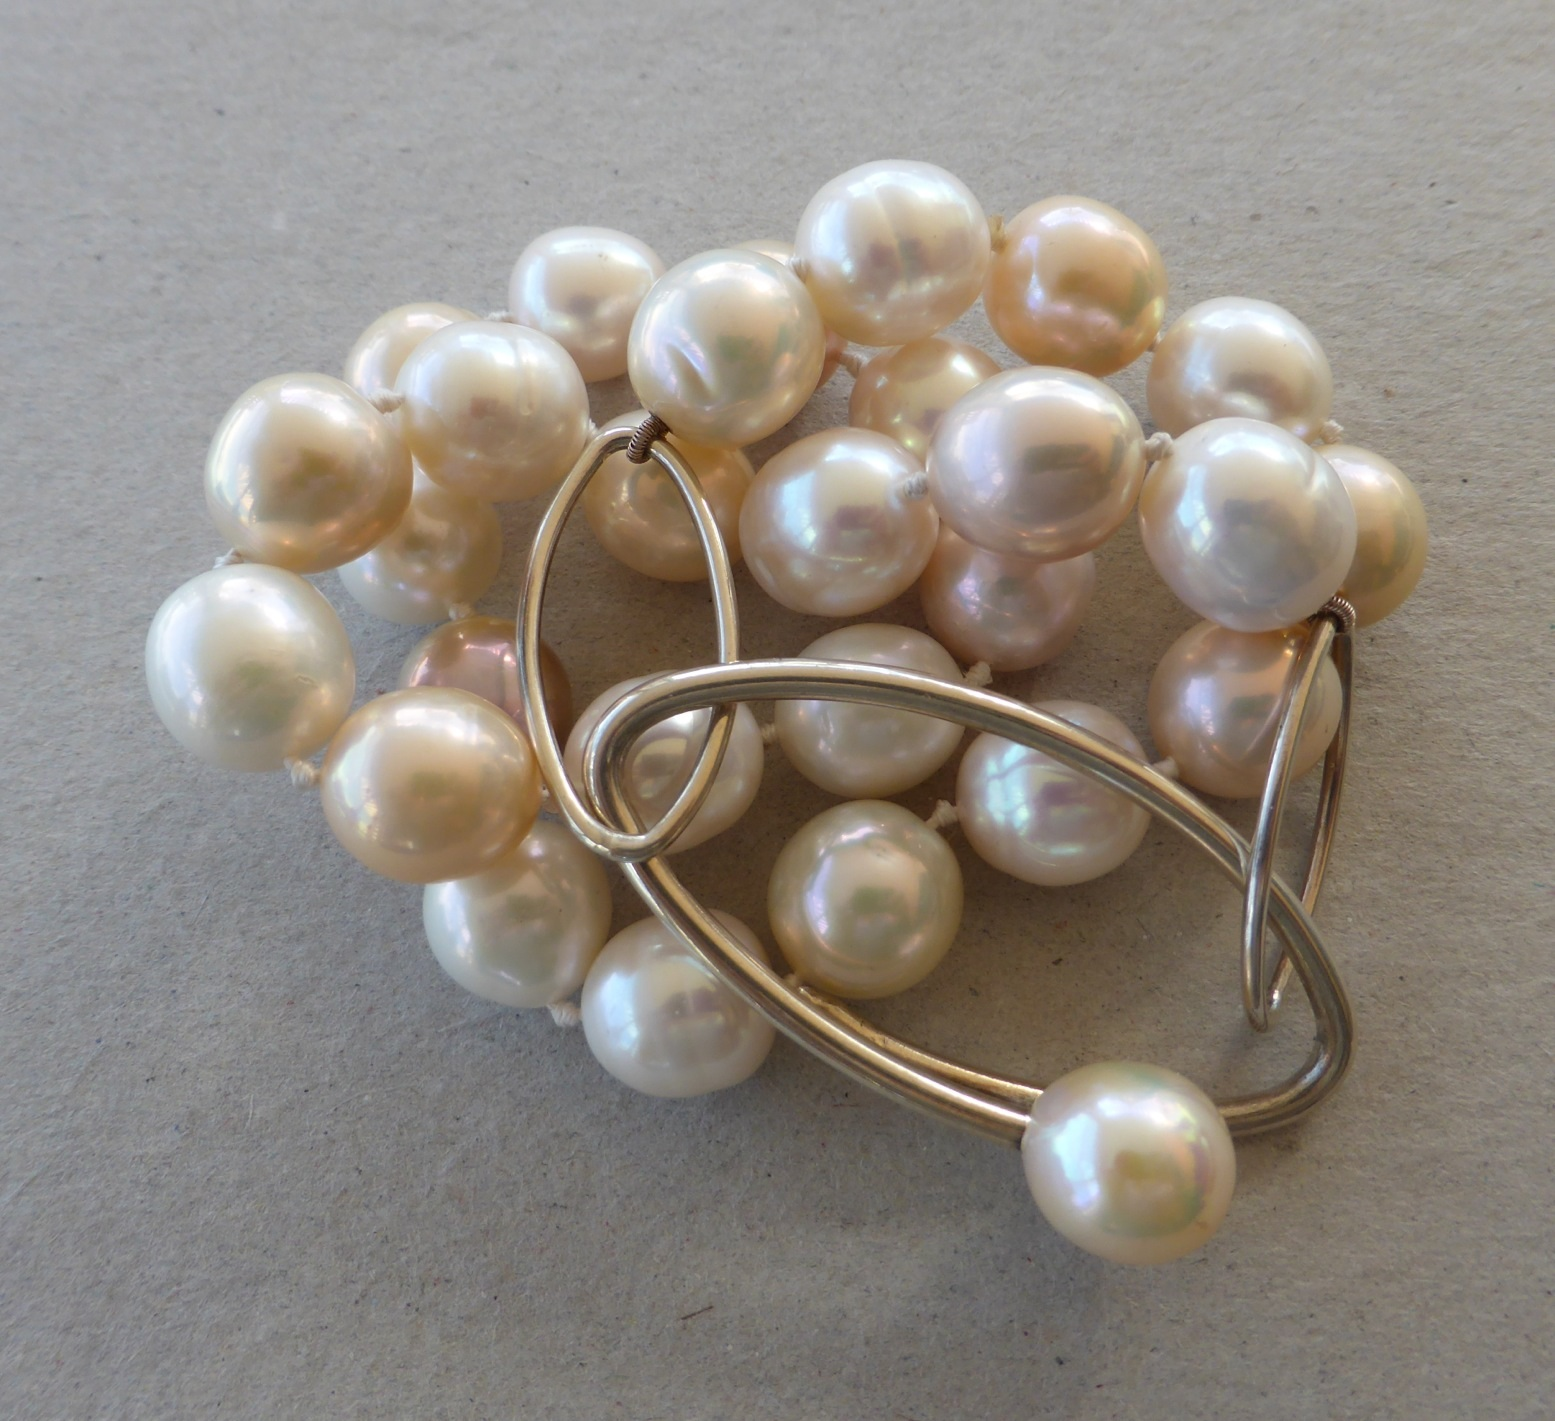 Something asian pearl necklace the question